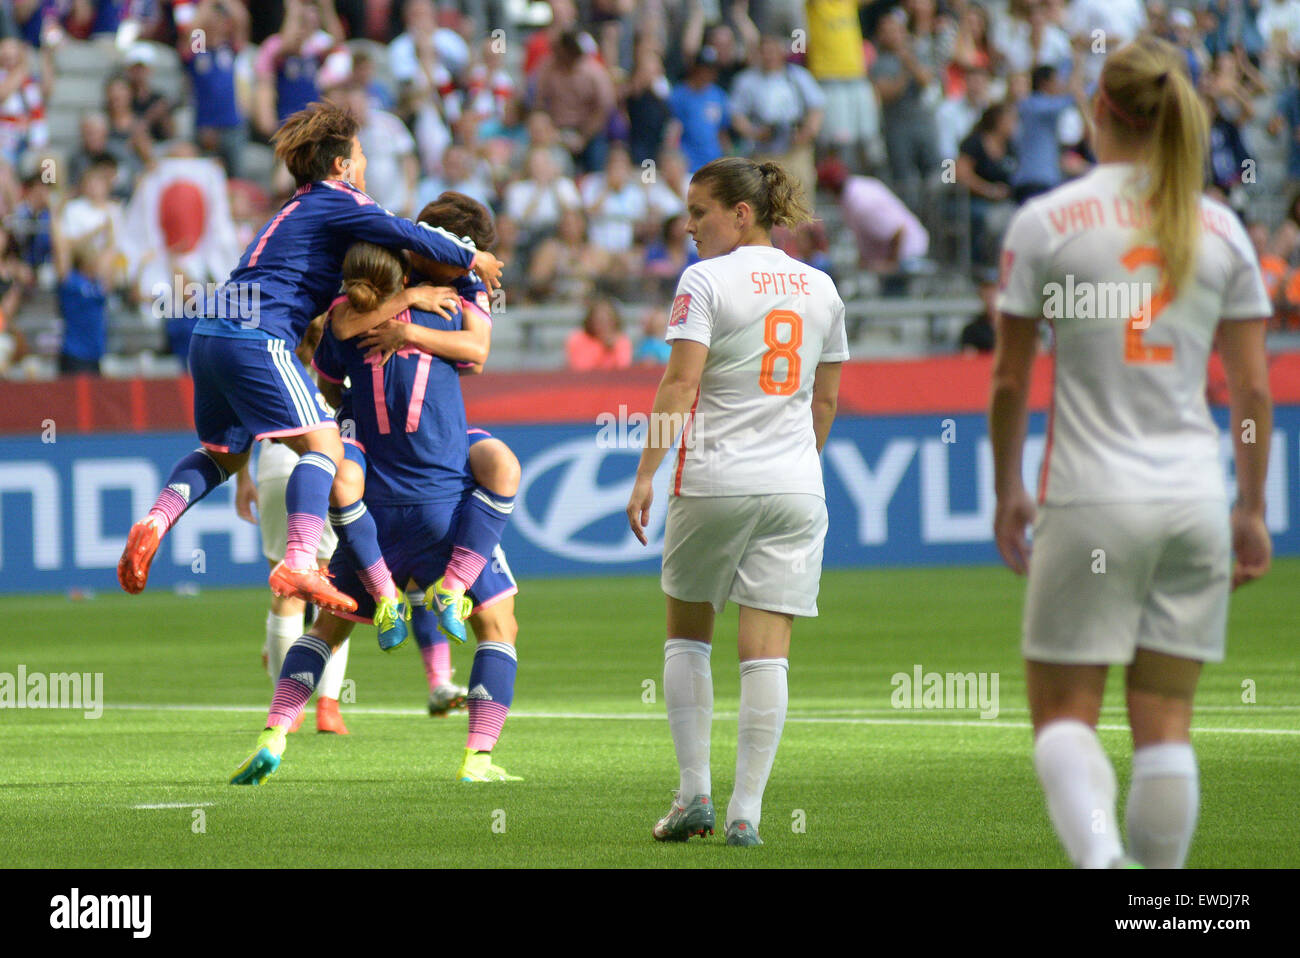 Vancouver, Canada. 23rd June, 2015. Players of Japan celebrate scoring against the Netherlands during their Round - Stock Image